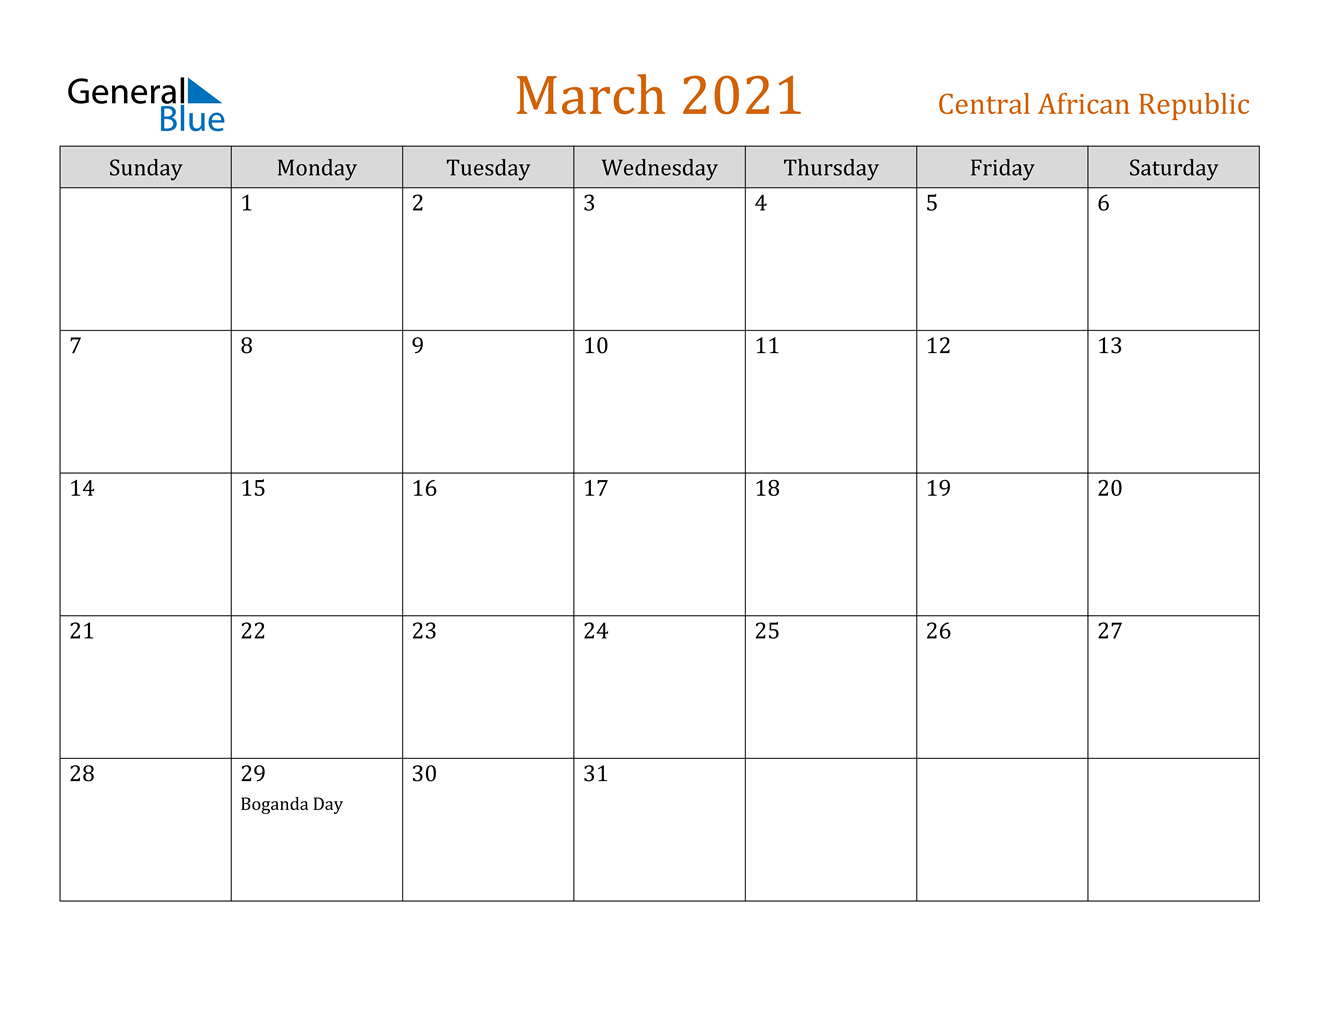 March 2021 Calendar Central African Republic